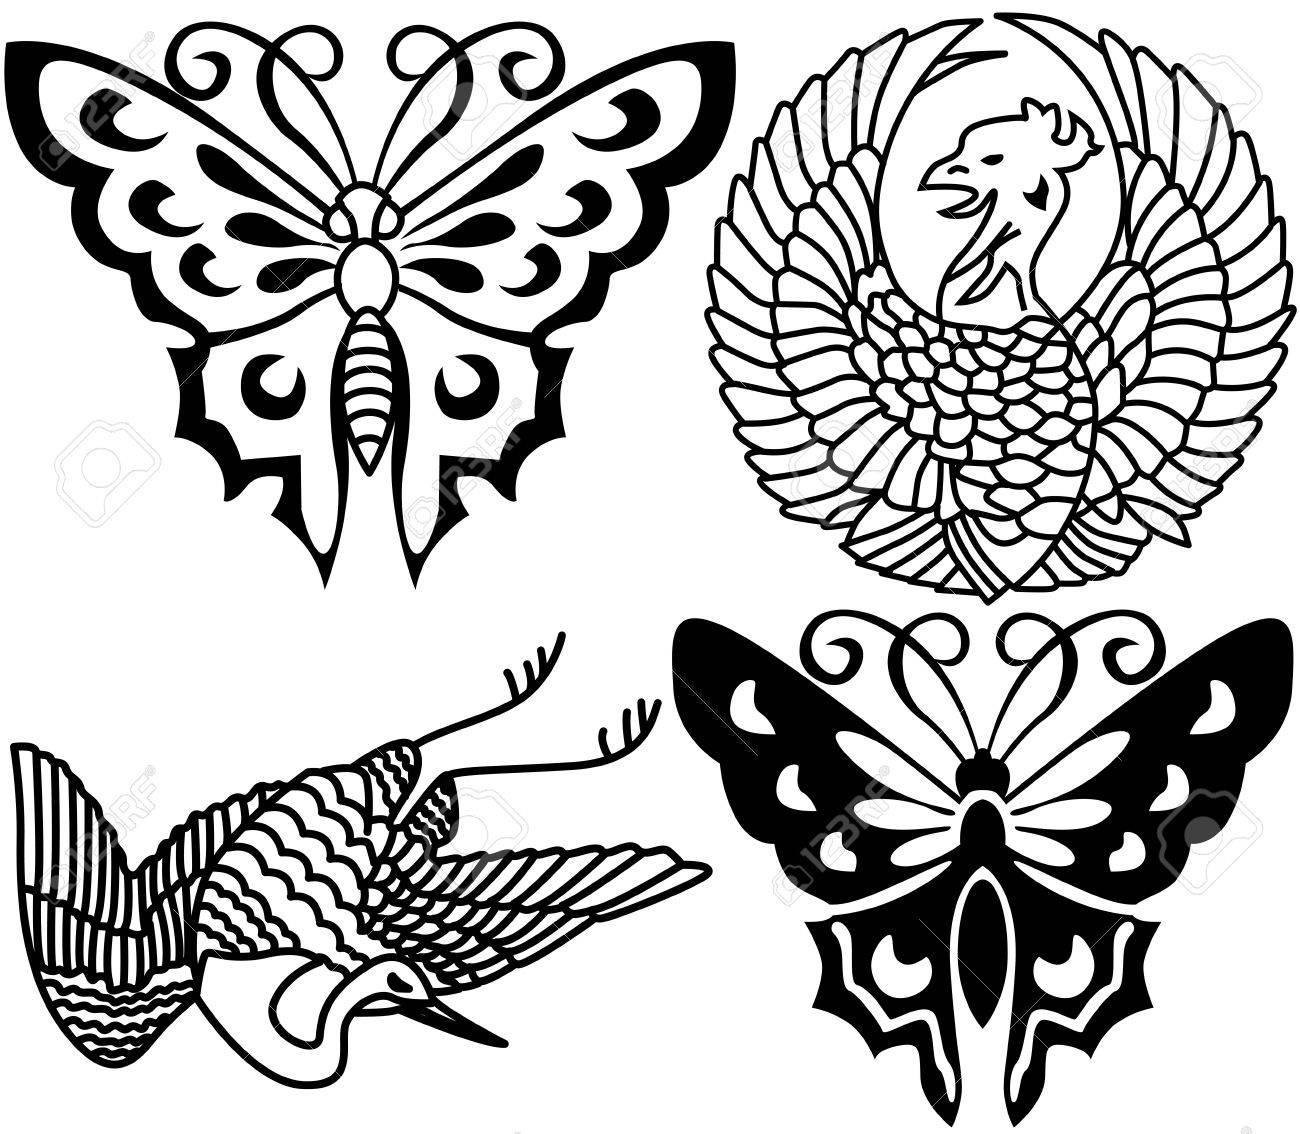 Ancient Japanese tattoo, birds, butterflies. Stock Vector - 6839534